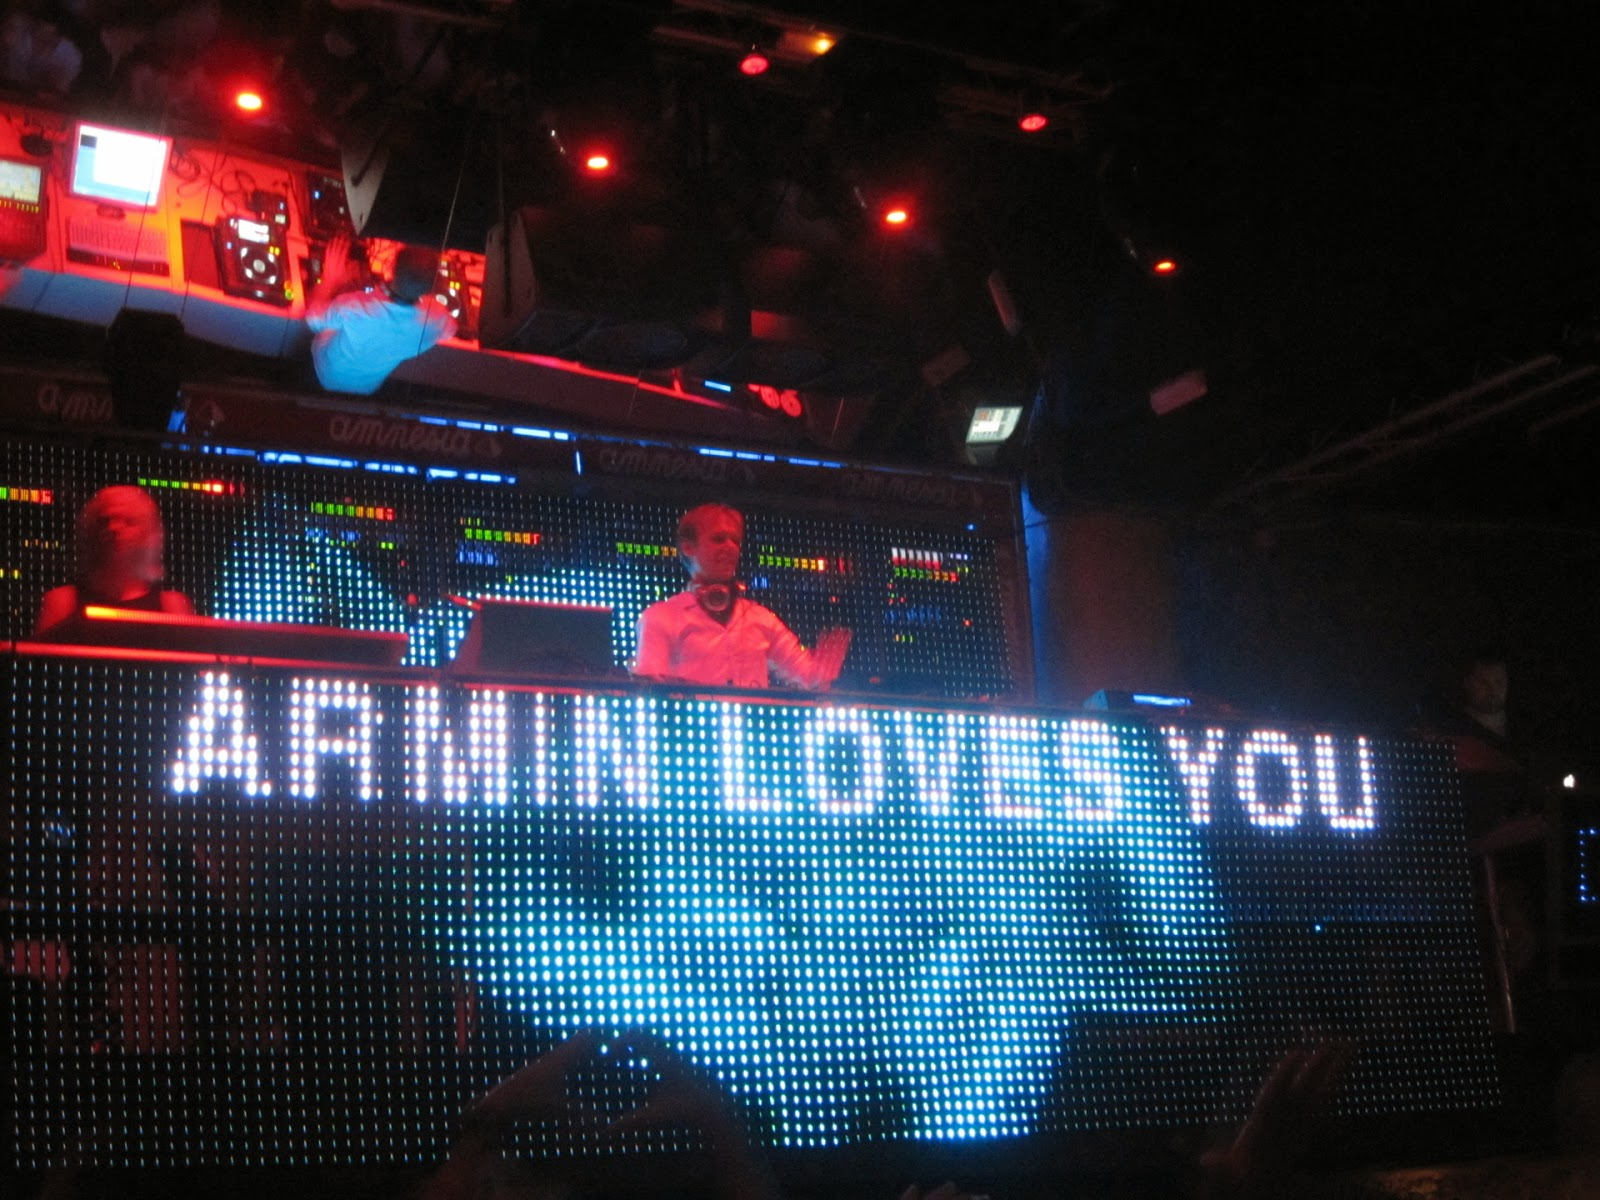 http://daily-beat.com/armin-van-buuren-pier-36-4-hour-set-download/